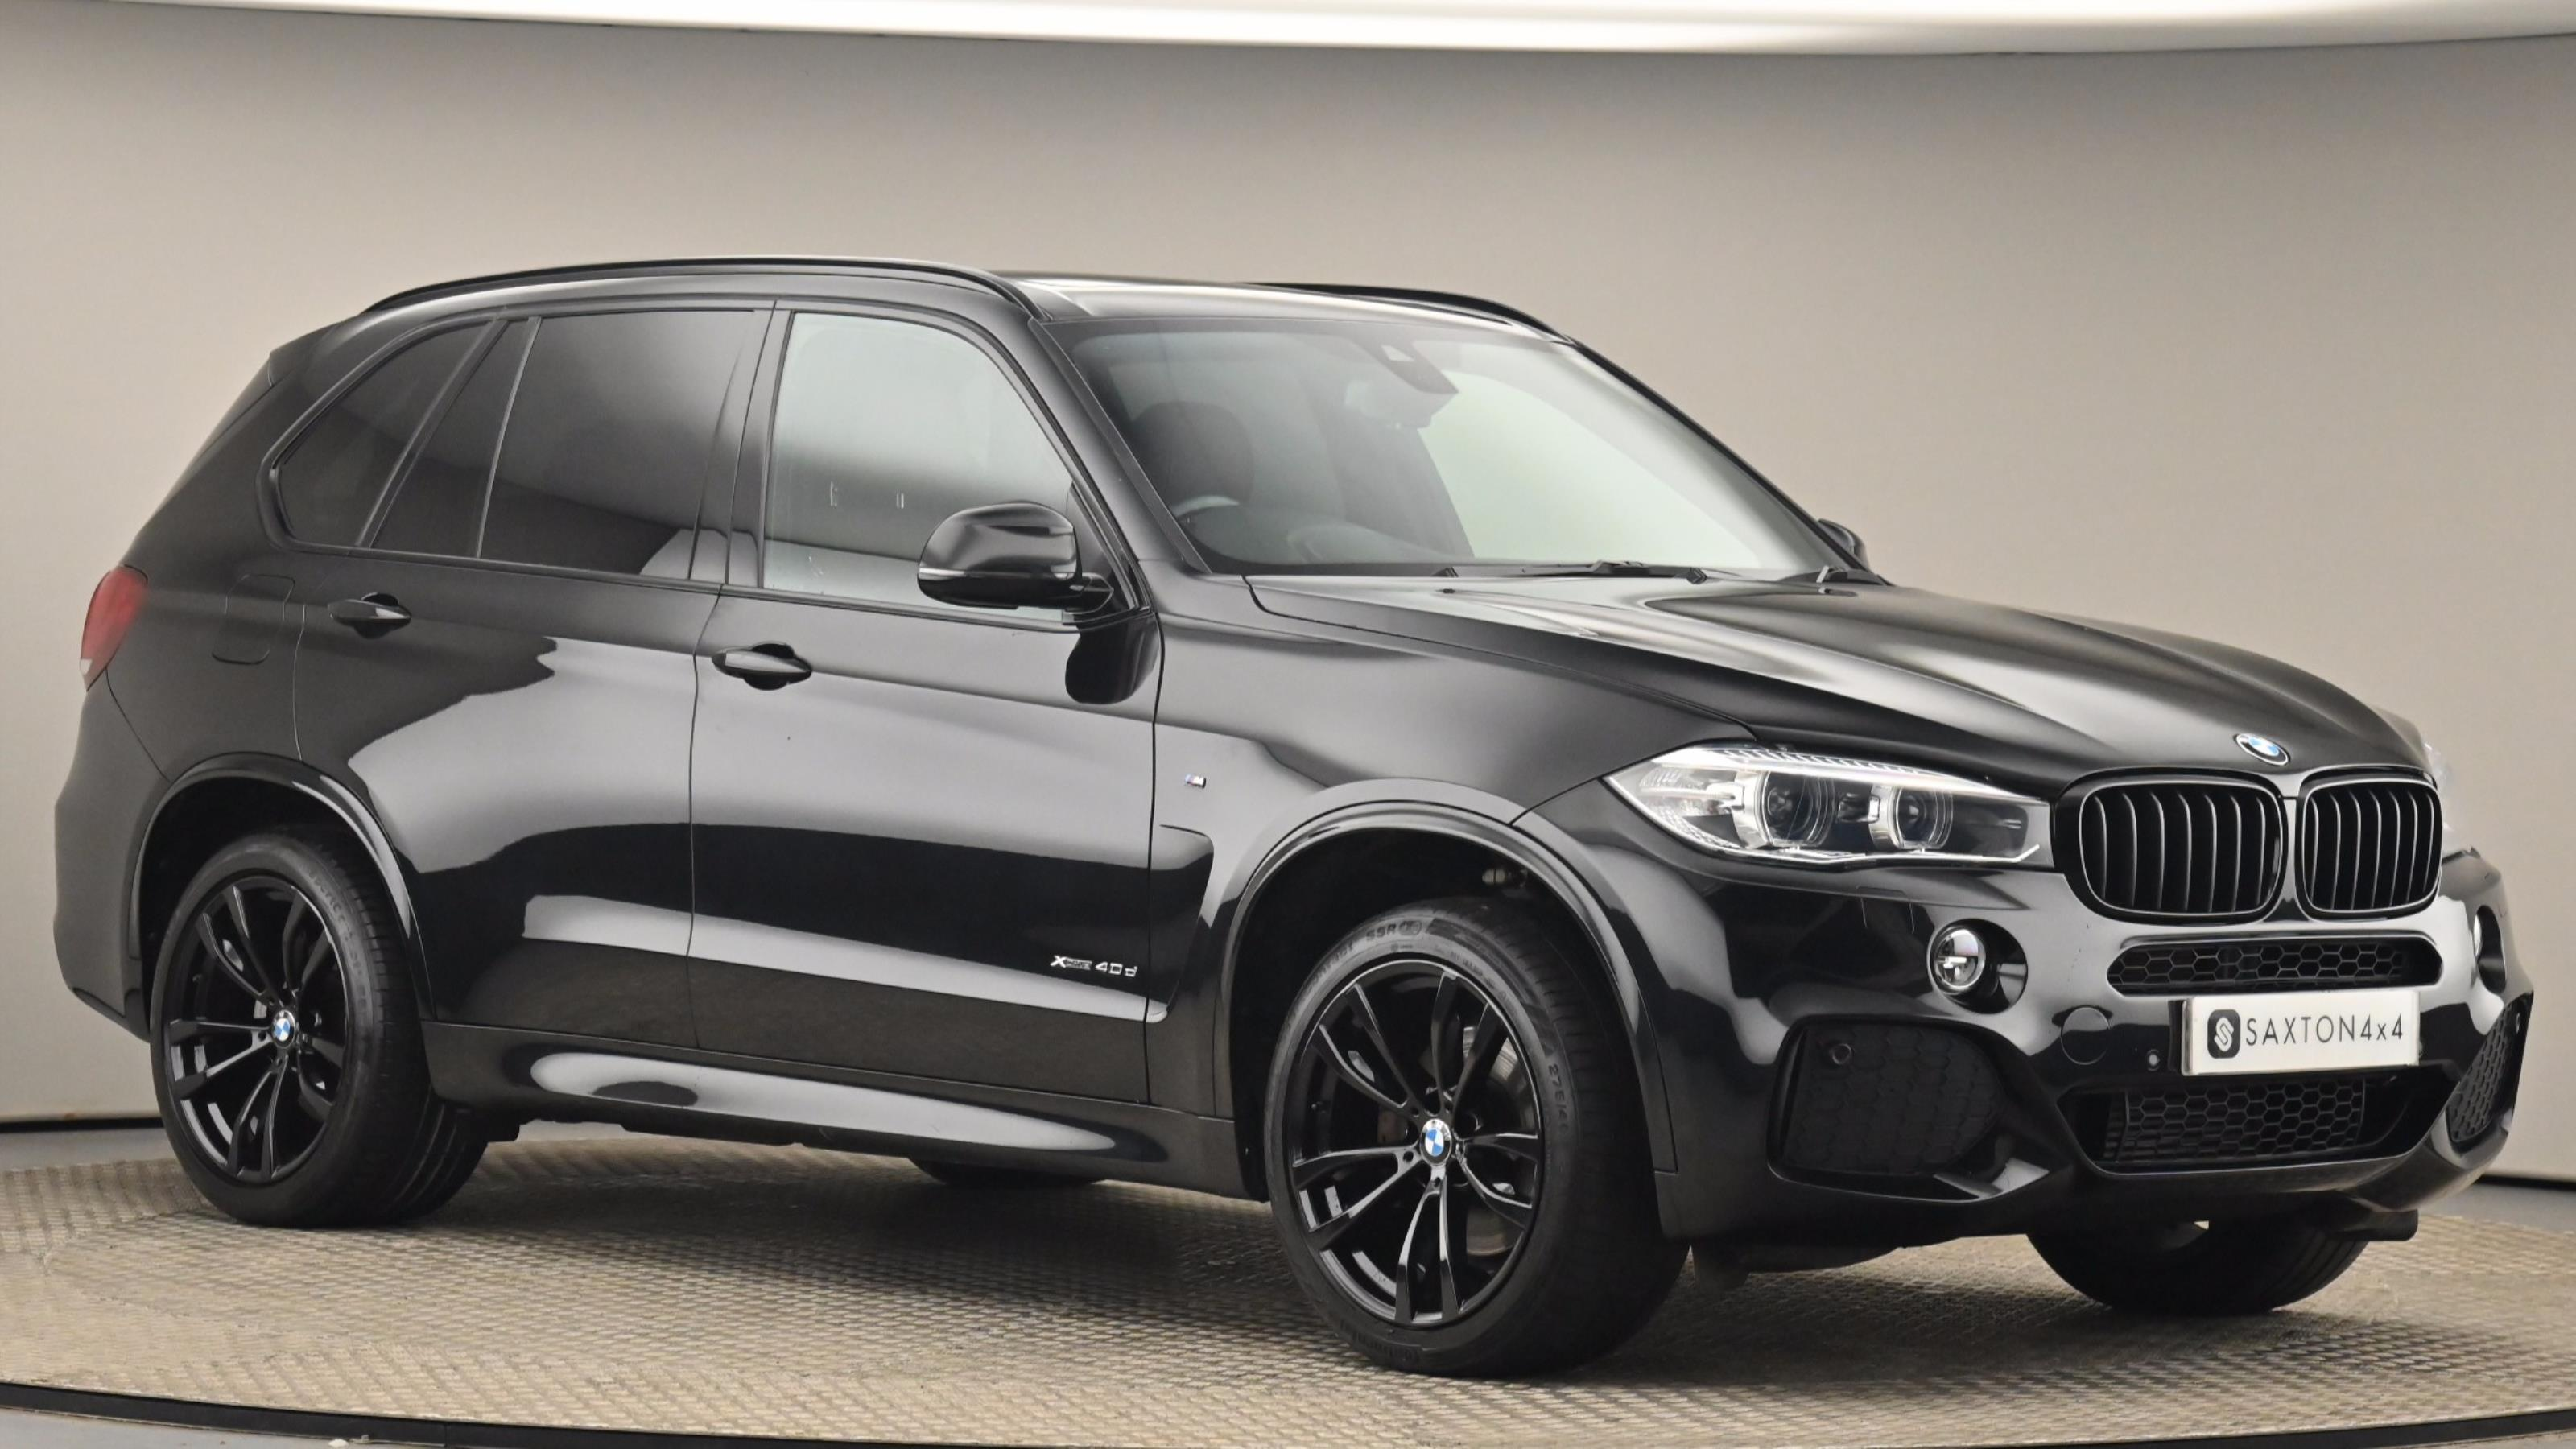 Used 2017 BMW X5 xDrive40d M Sport 5dr Auto [7 Seat] Black at Saxton4x4